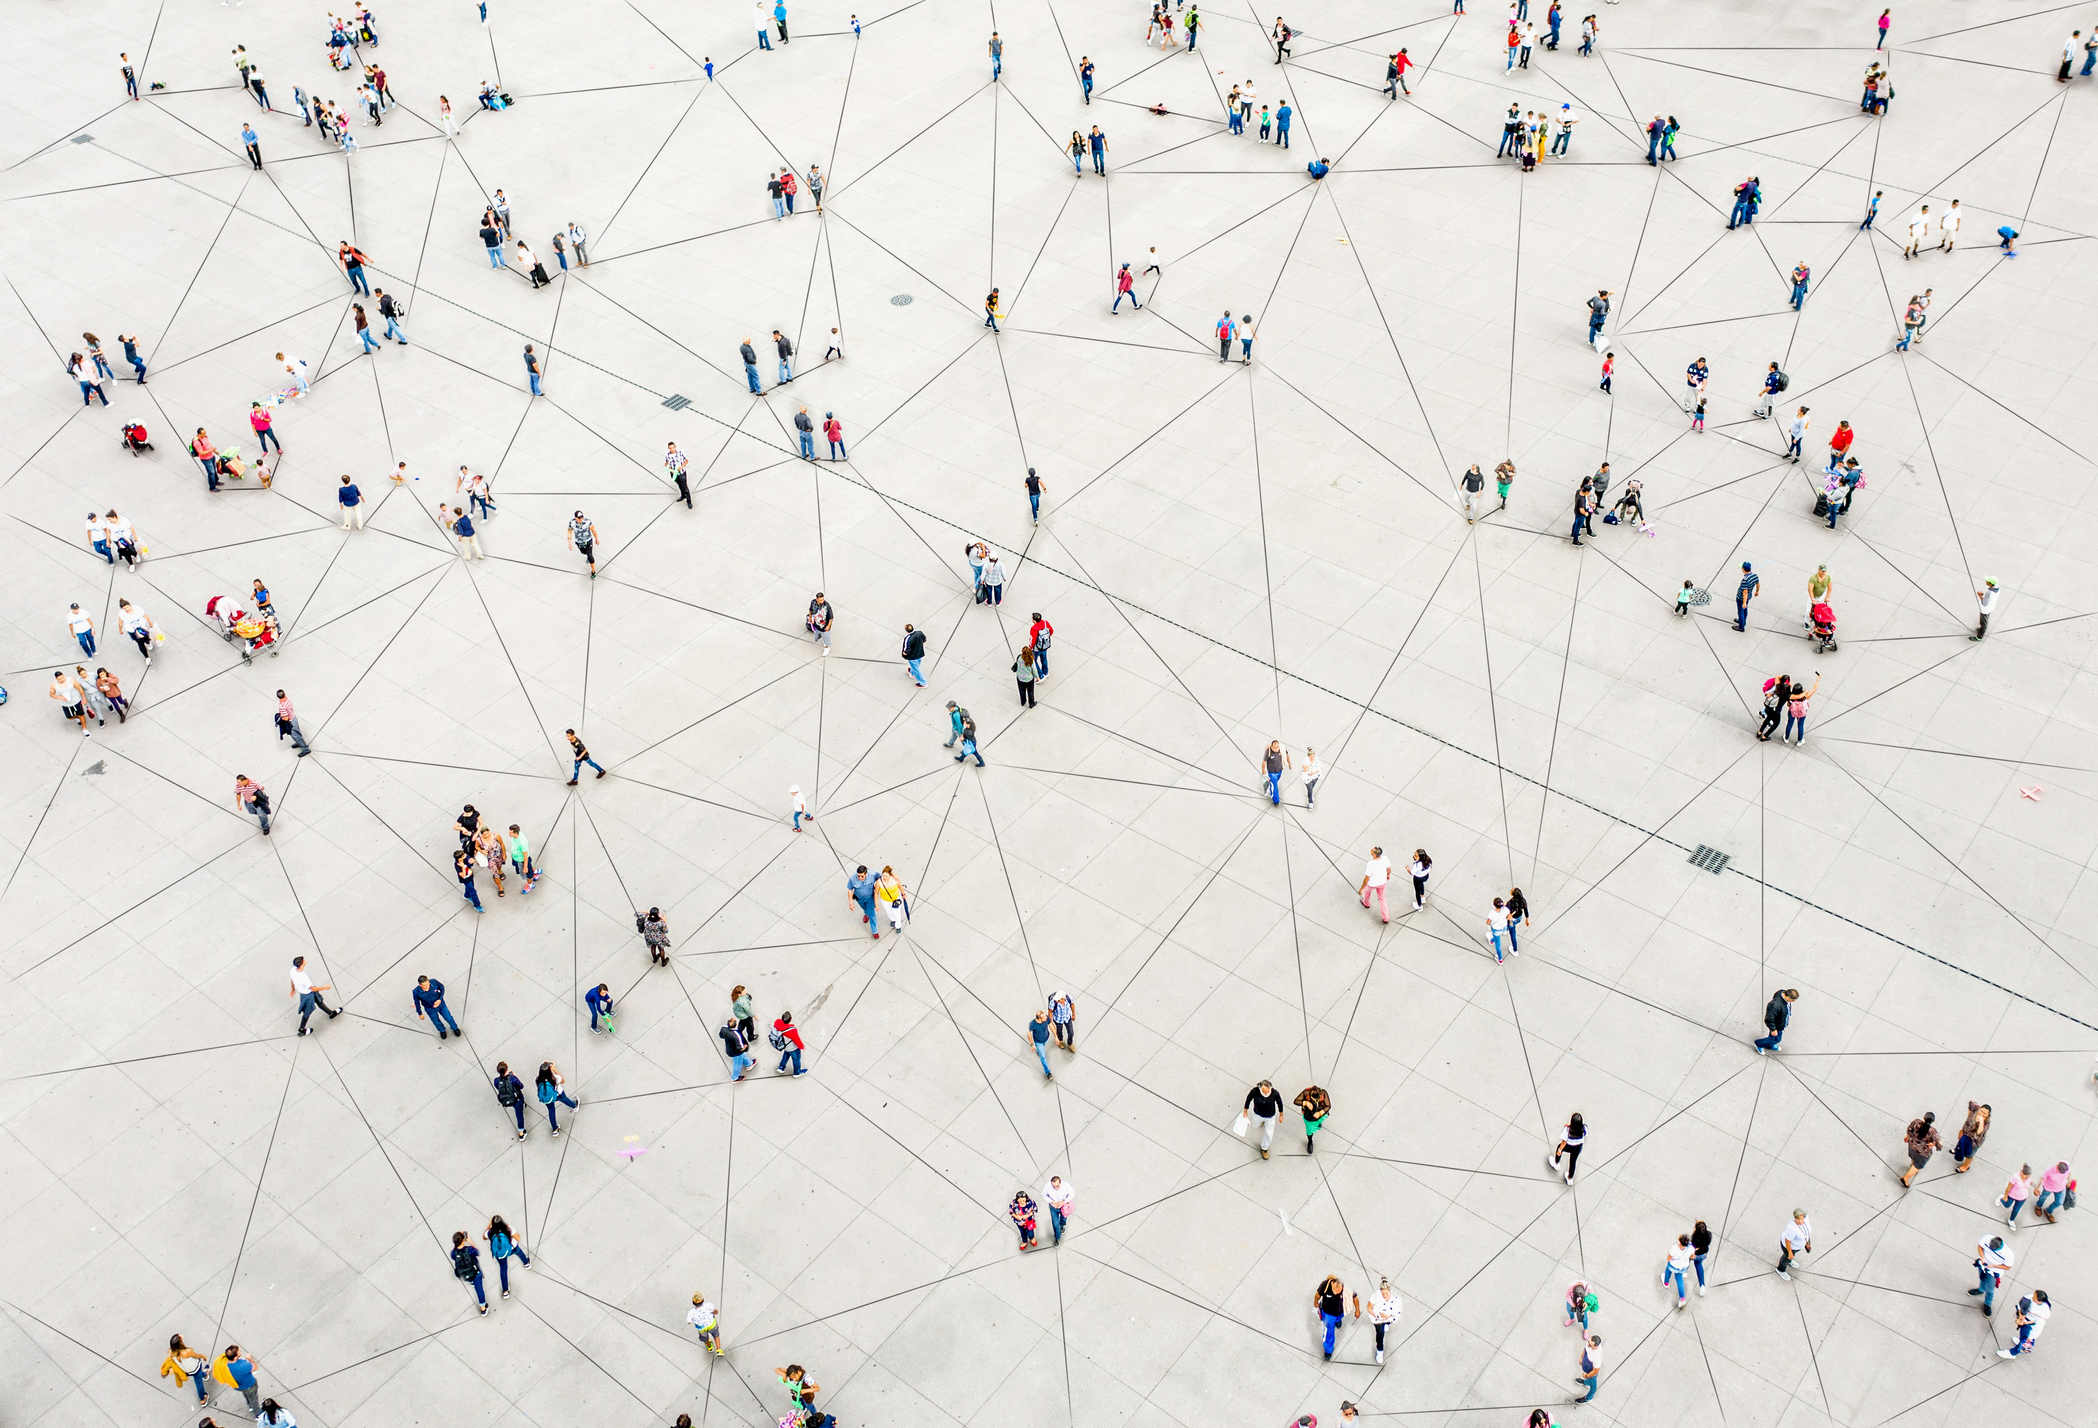 Aerial view of crowd connected by lines representing CMI community